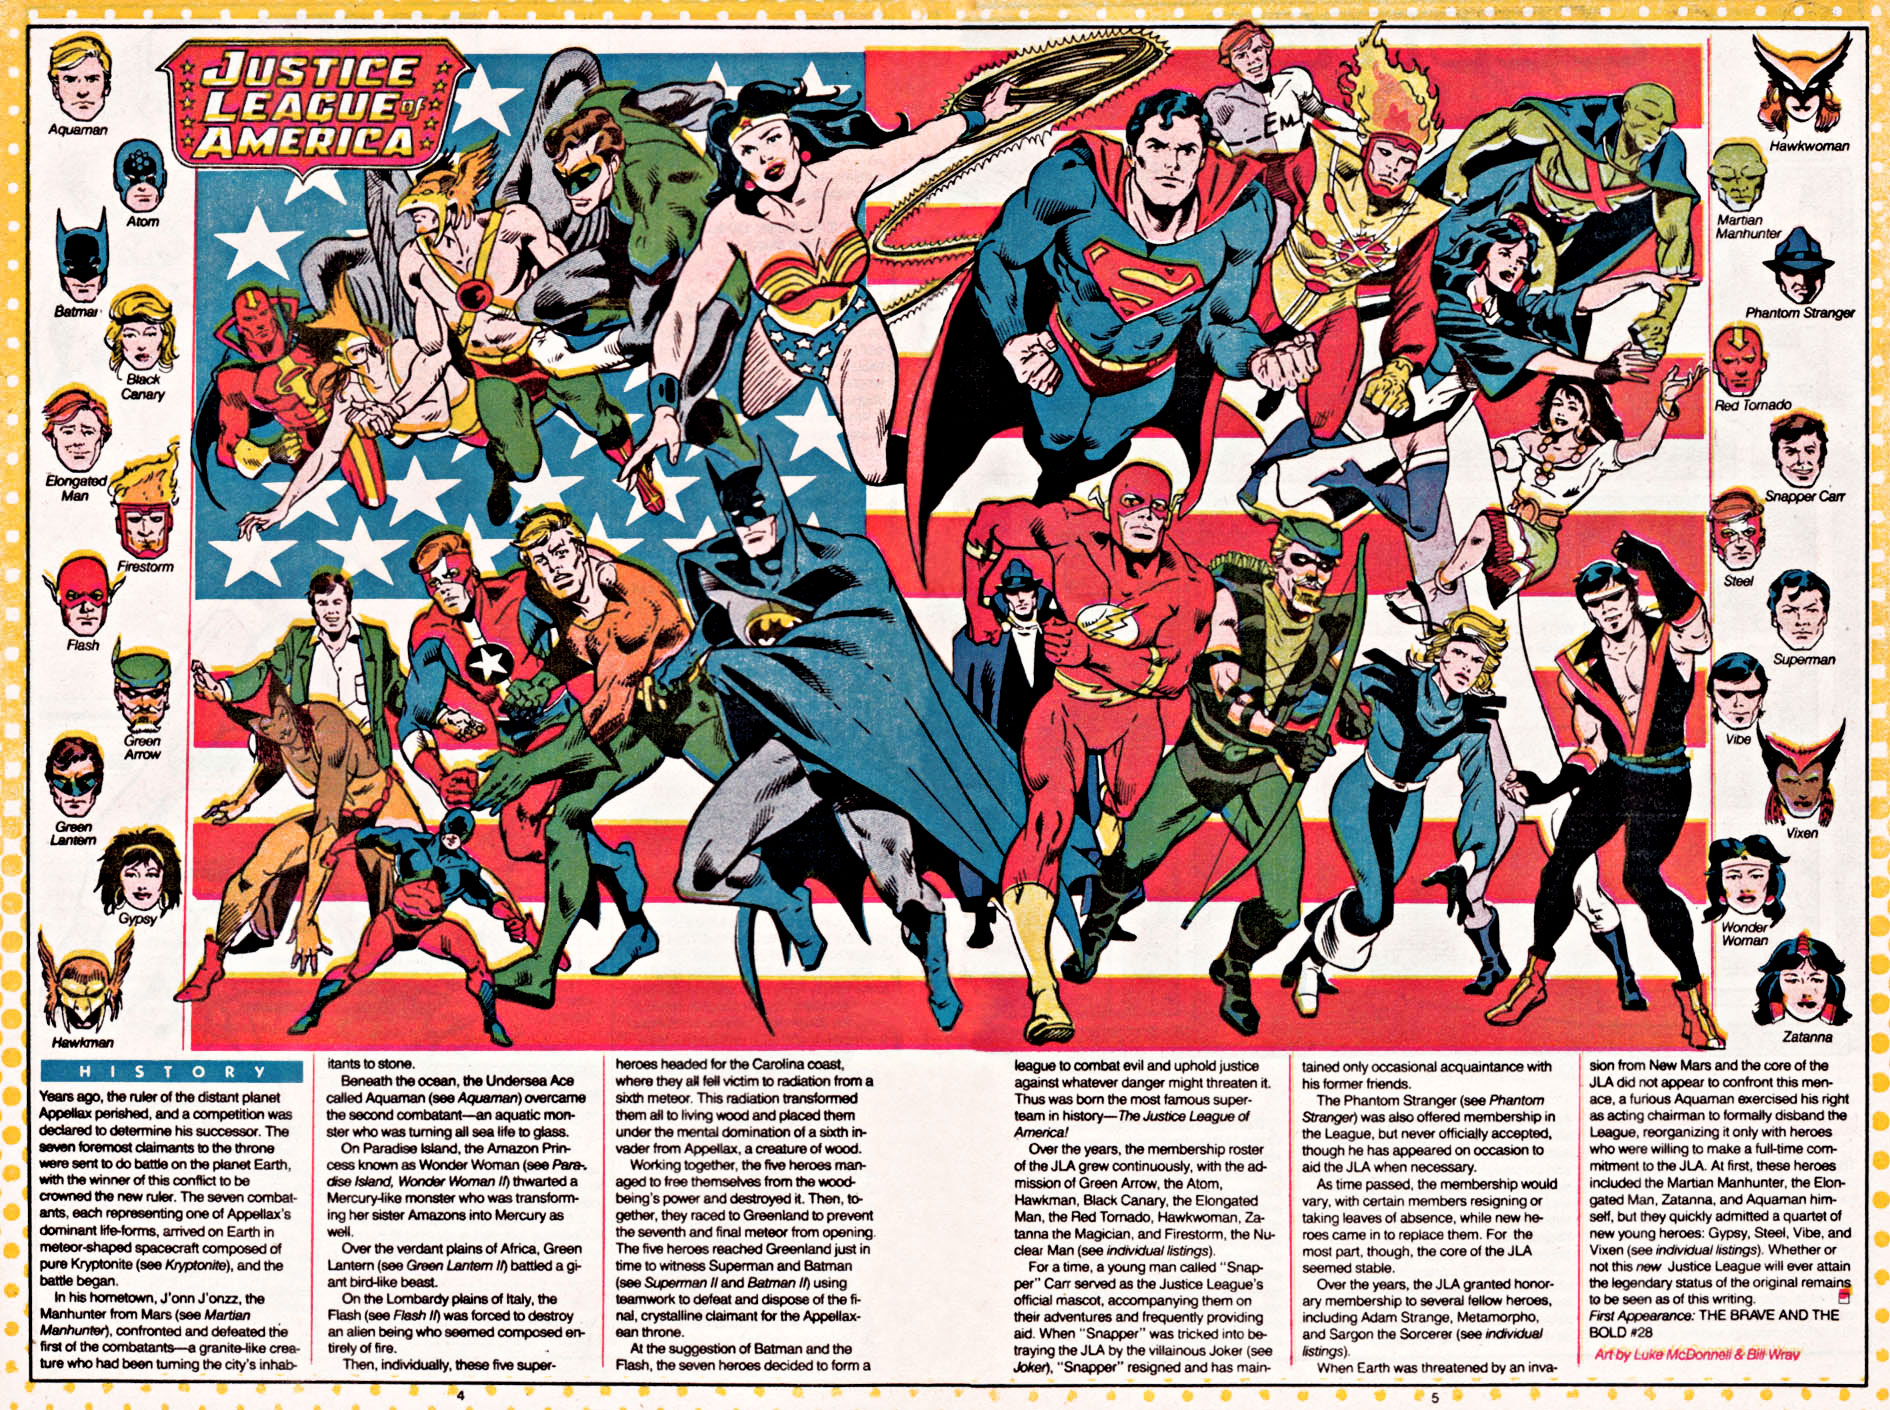 Justice League of America by Luke McDonnell and Bill Wray